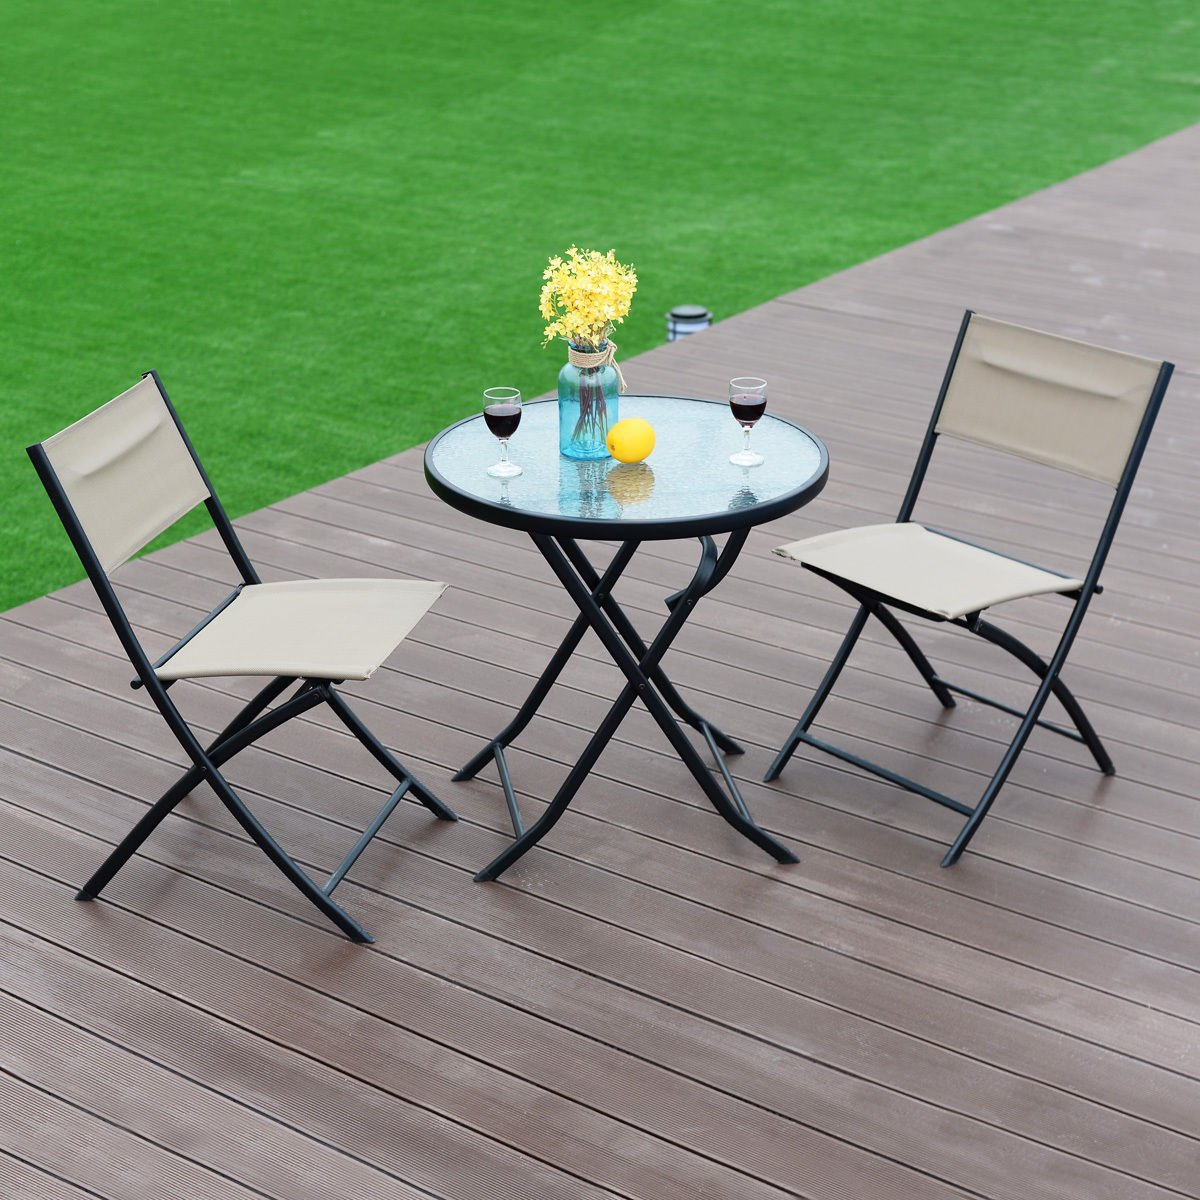 3 Piece Table Chair Set Metal Tempered Glass Folding Outdoor Patio Garden Pool